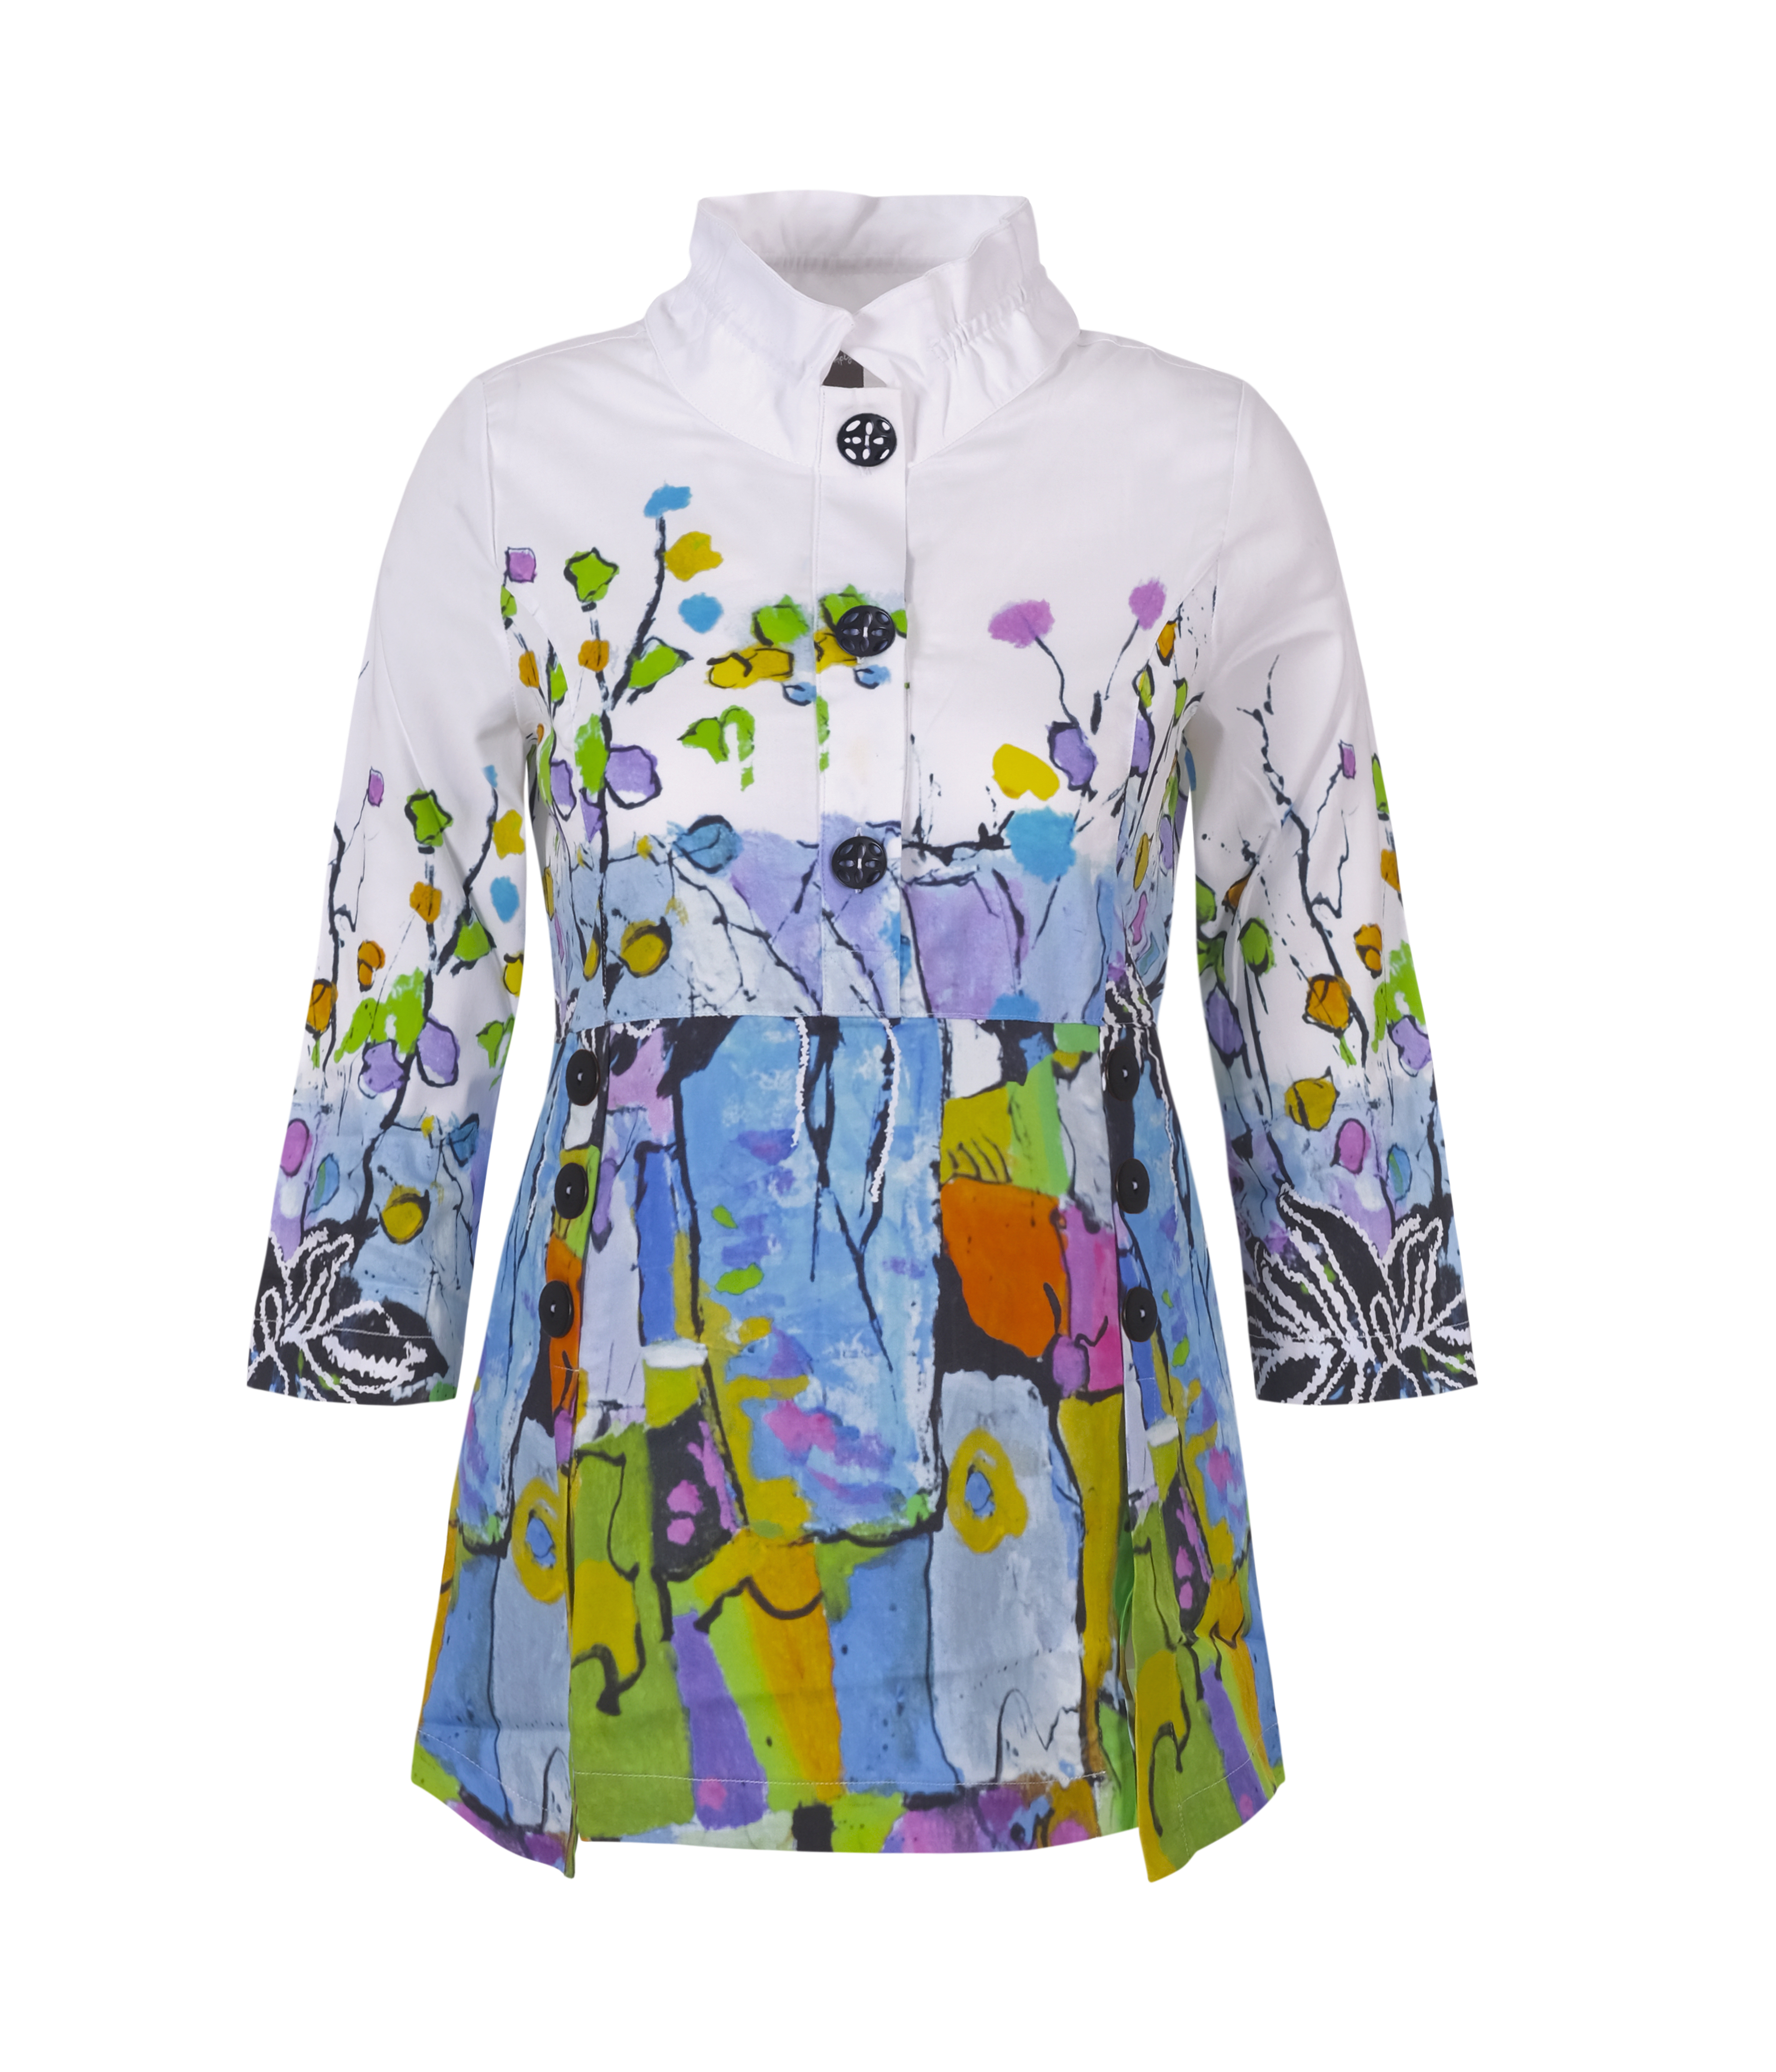 Simply Art Dolcezza: Still Life For A Wedding Party Buttoned Down Flared Art Blouse DOLCEZZA_SIMPLYART_21665